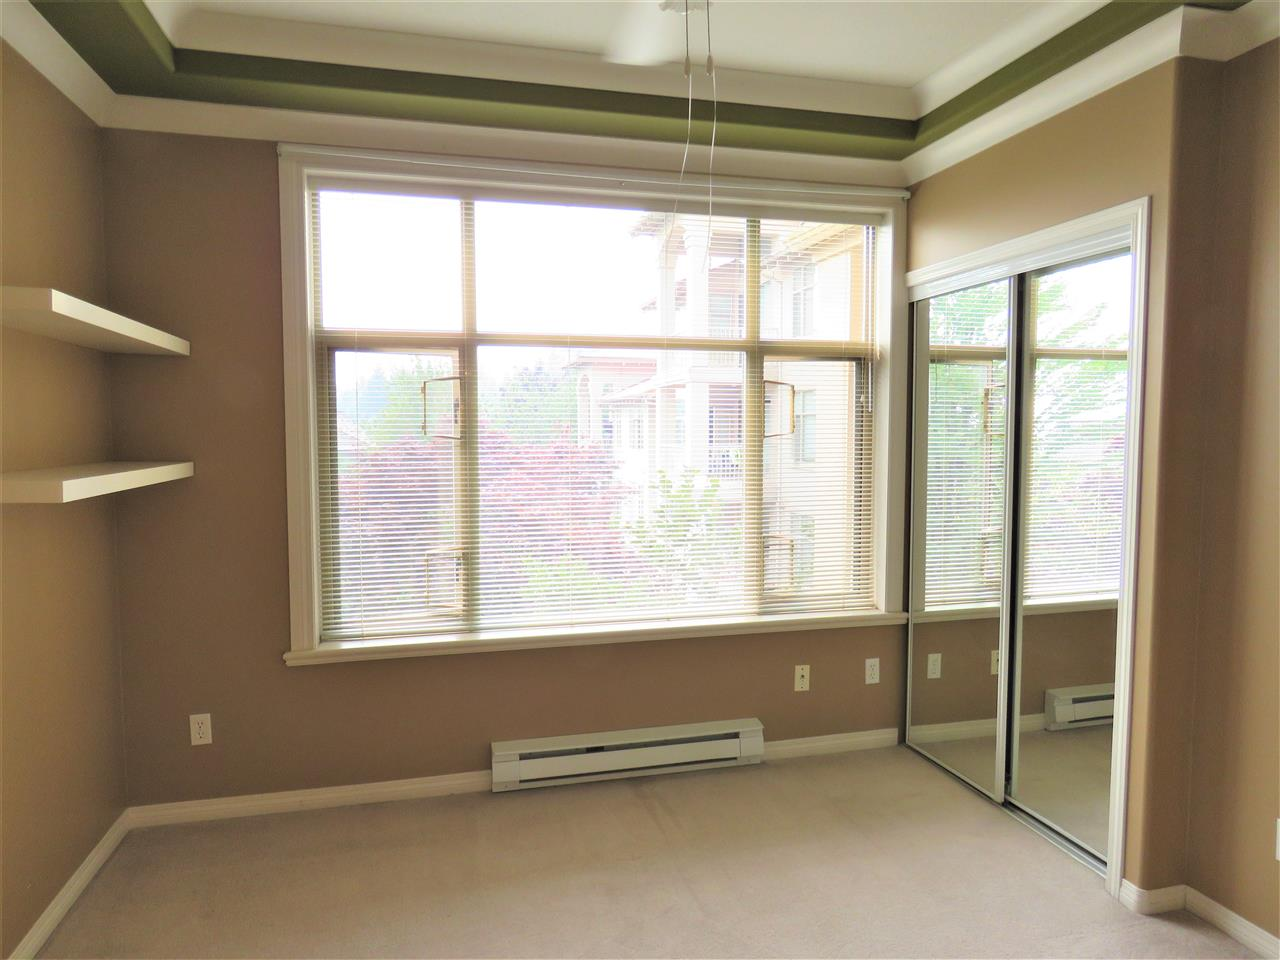 Condo Apartment at 309 3176 PLATEAU BOULEVARD, Unit 309, Coquitlam, British Columbia. Image 12